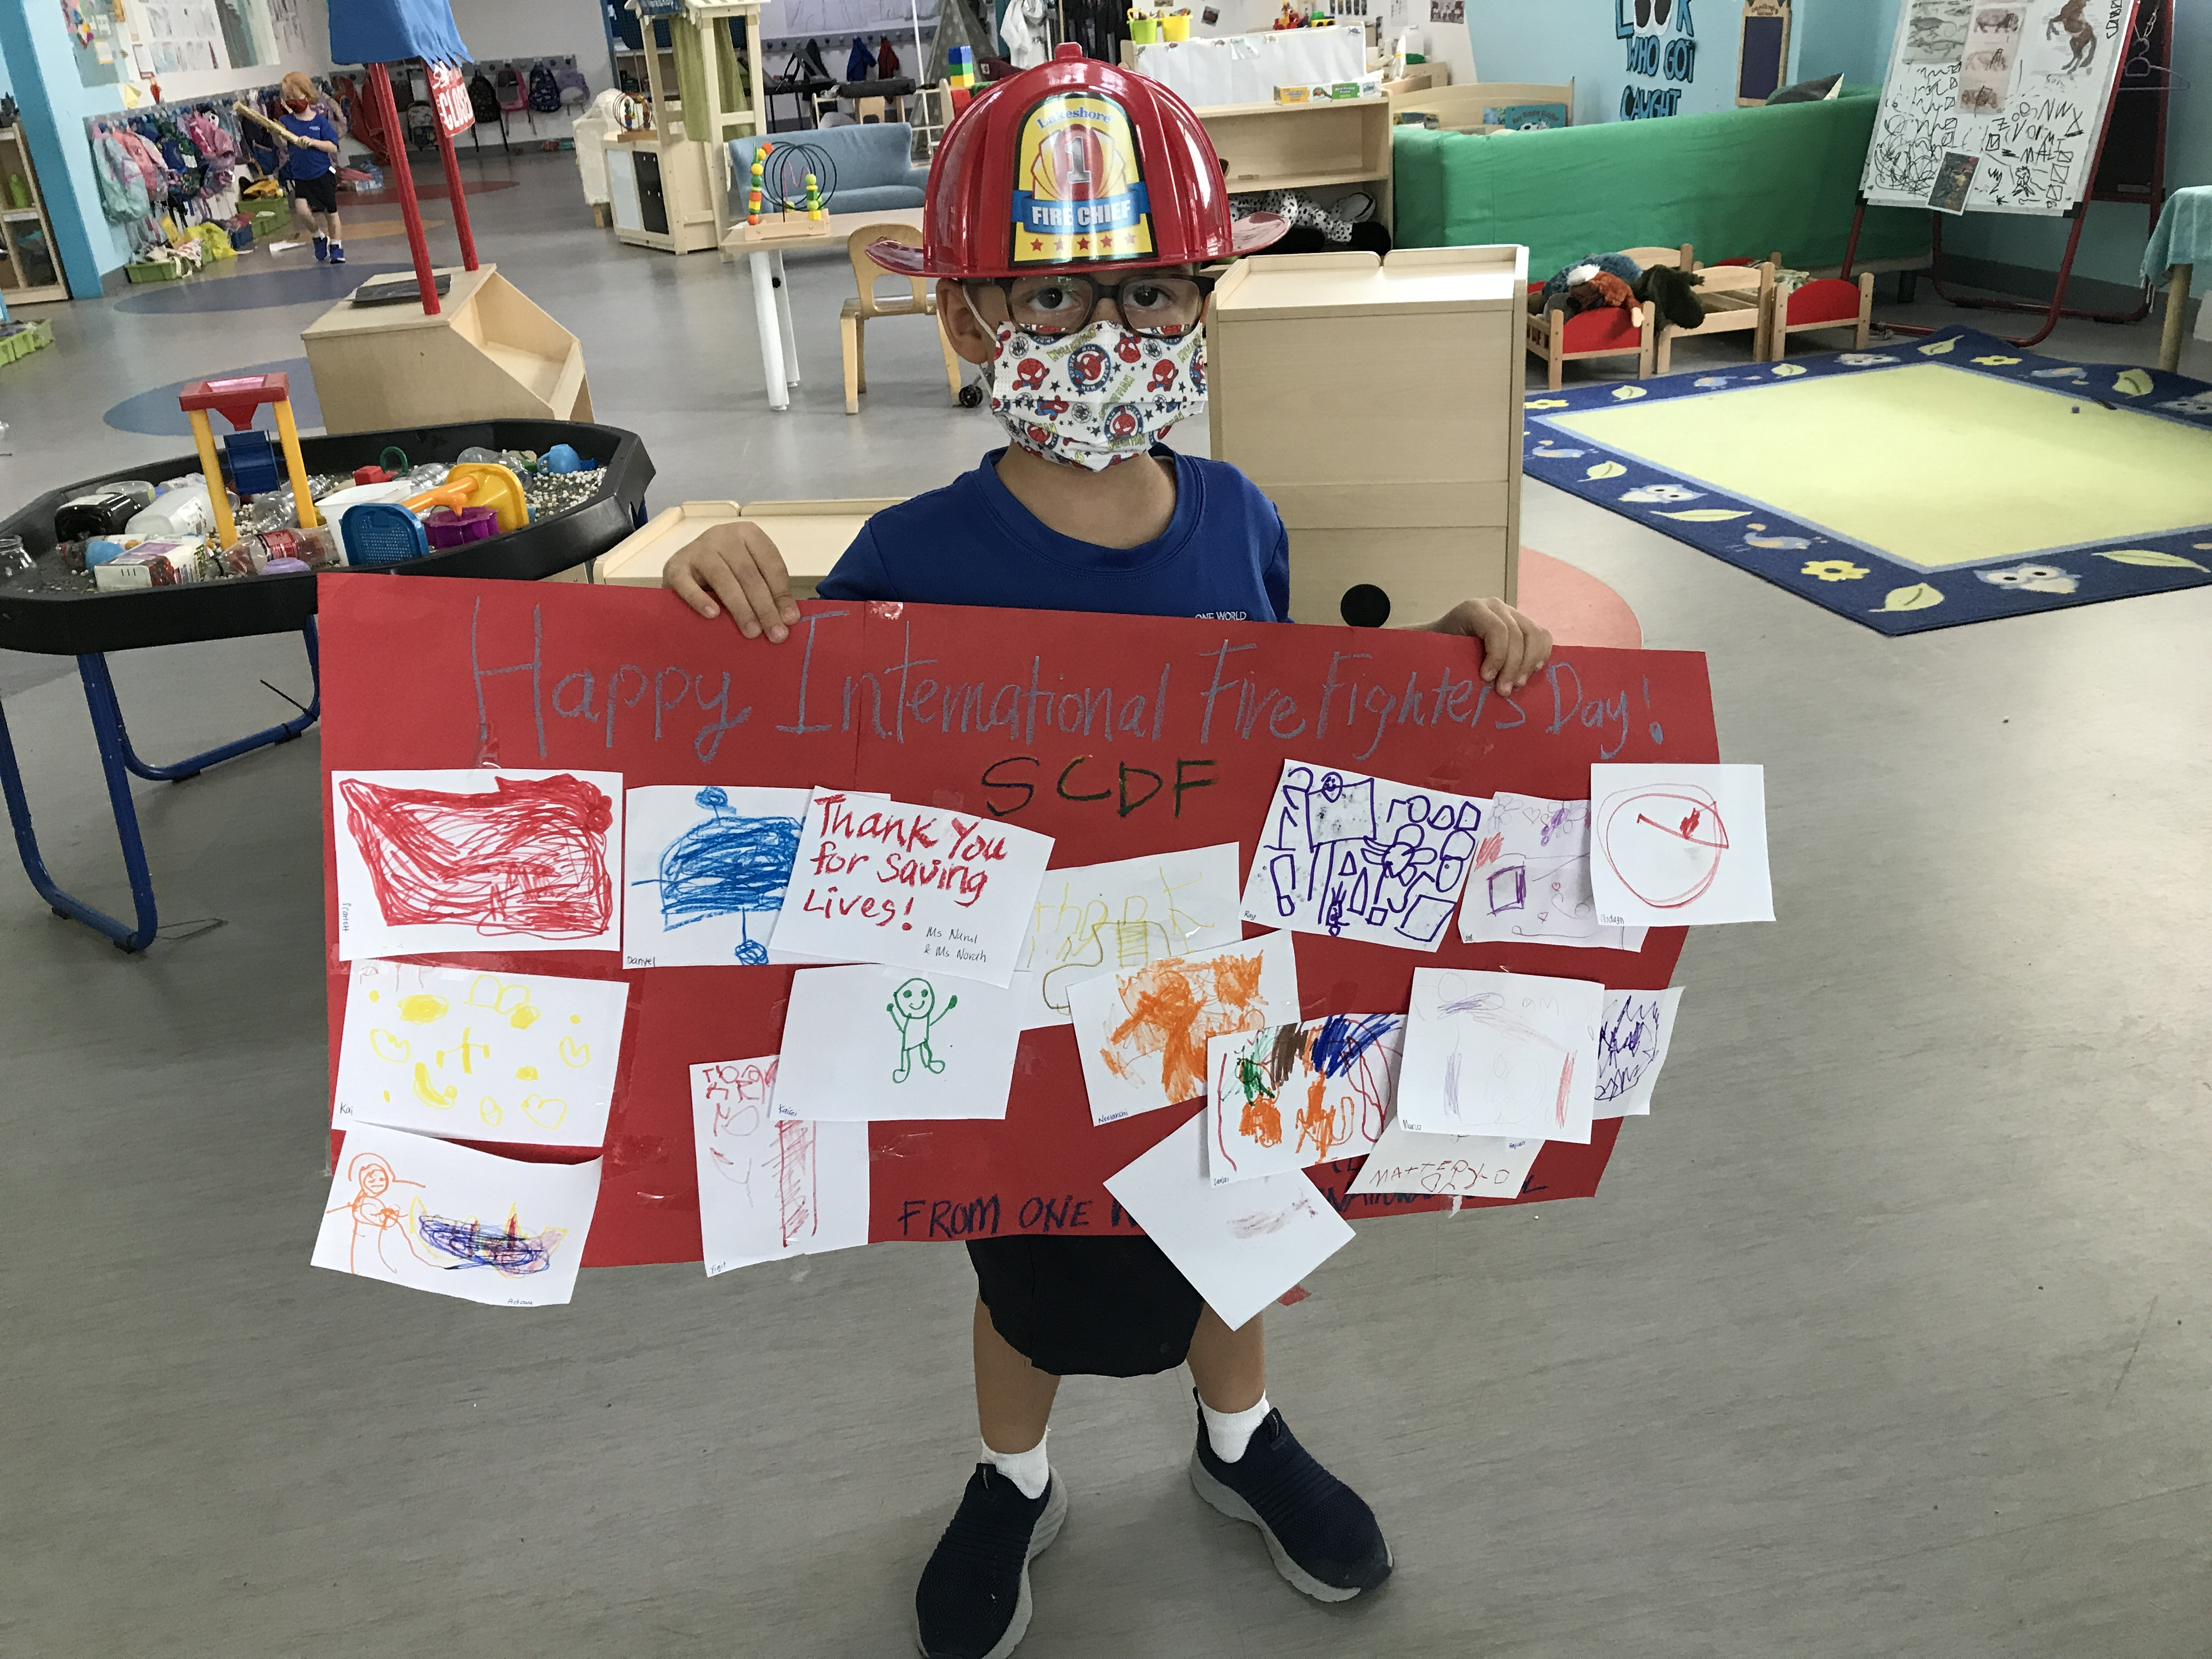 OWIS Early Childhood Students Celebrate International Firefighter Day - 10